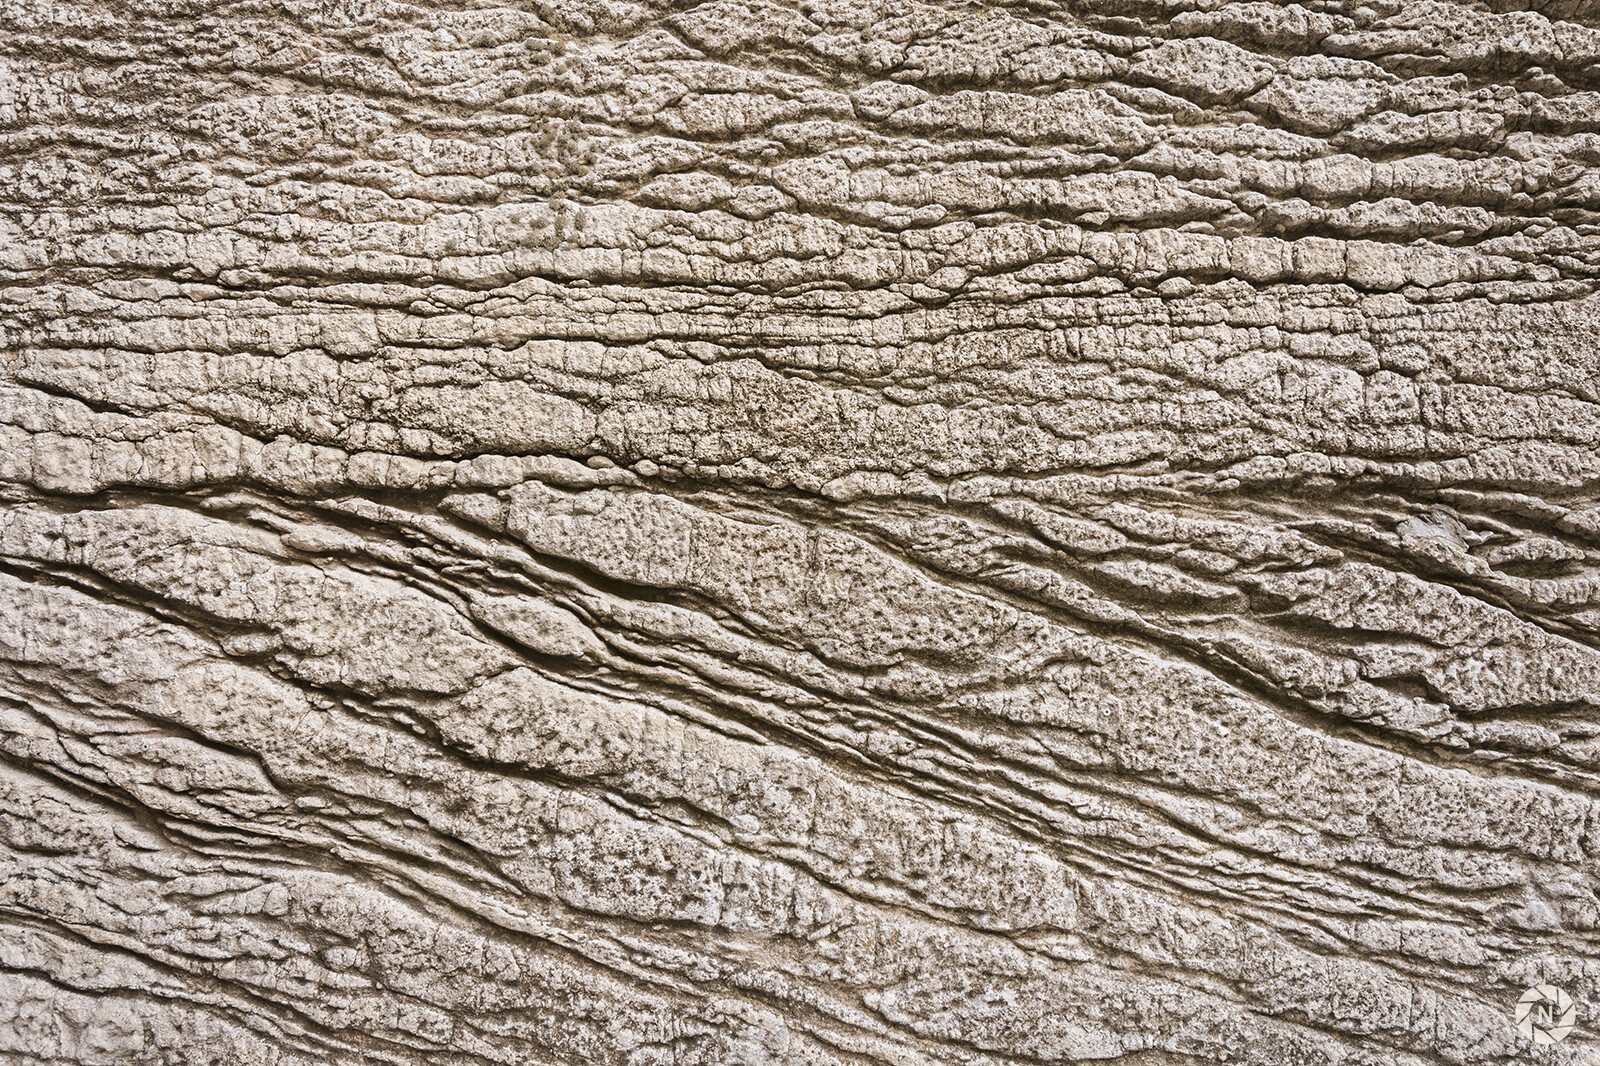 From the Texture Photo Pack: Rocky Shore  https://www.artstation.com/a/165830